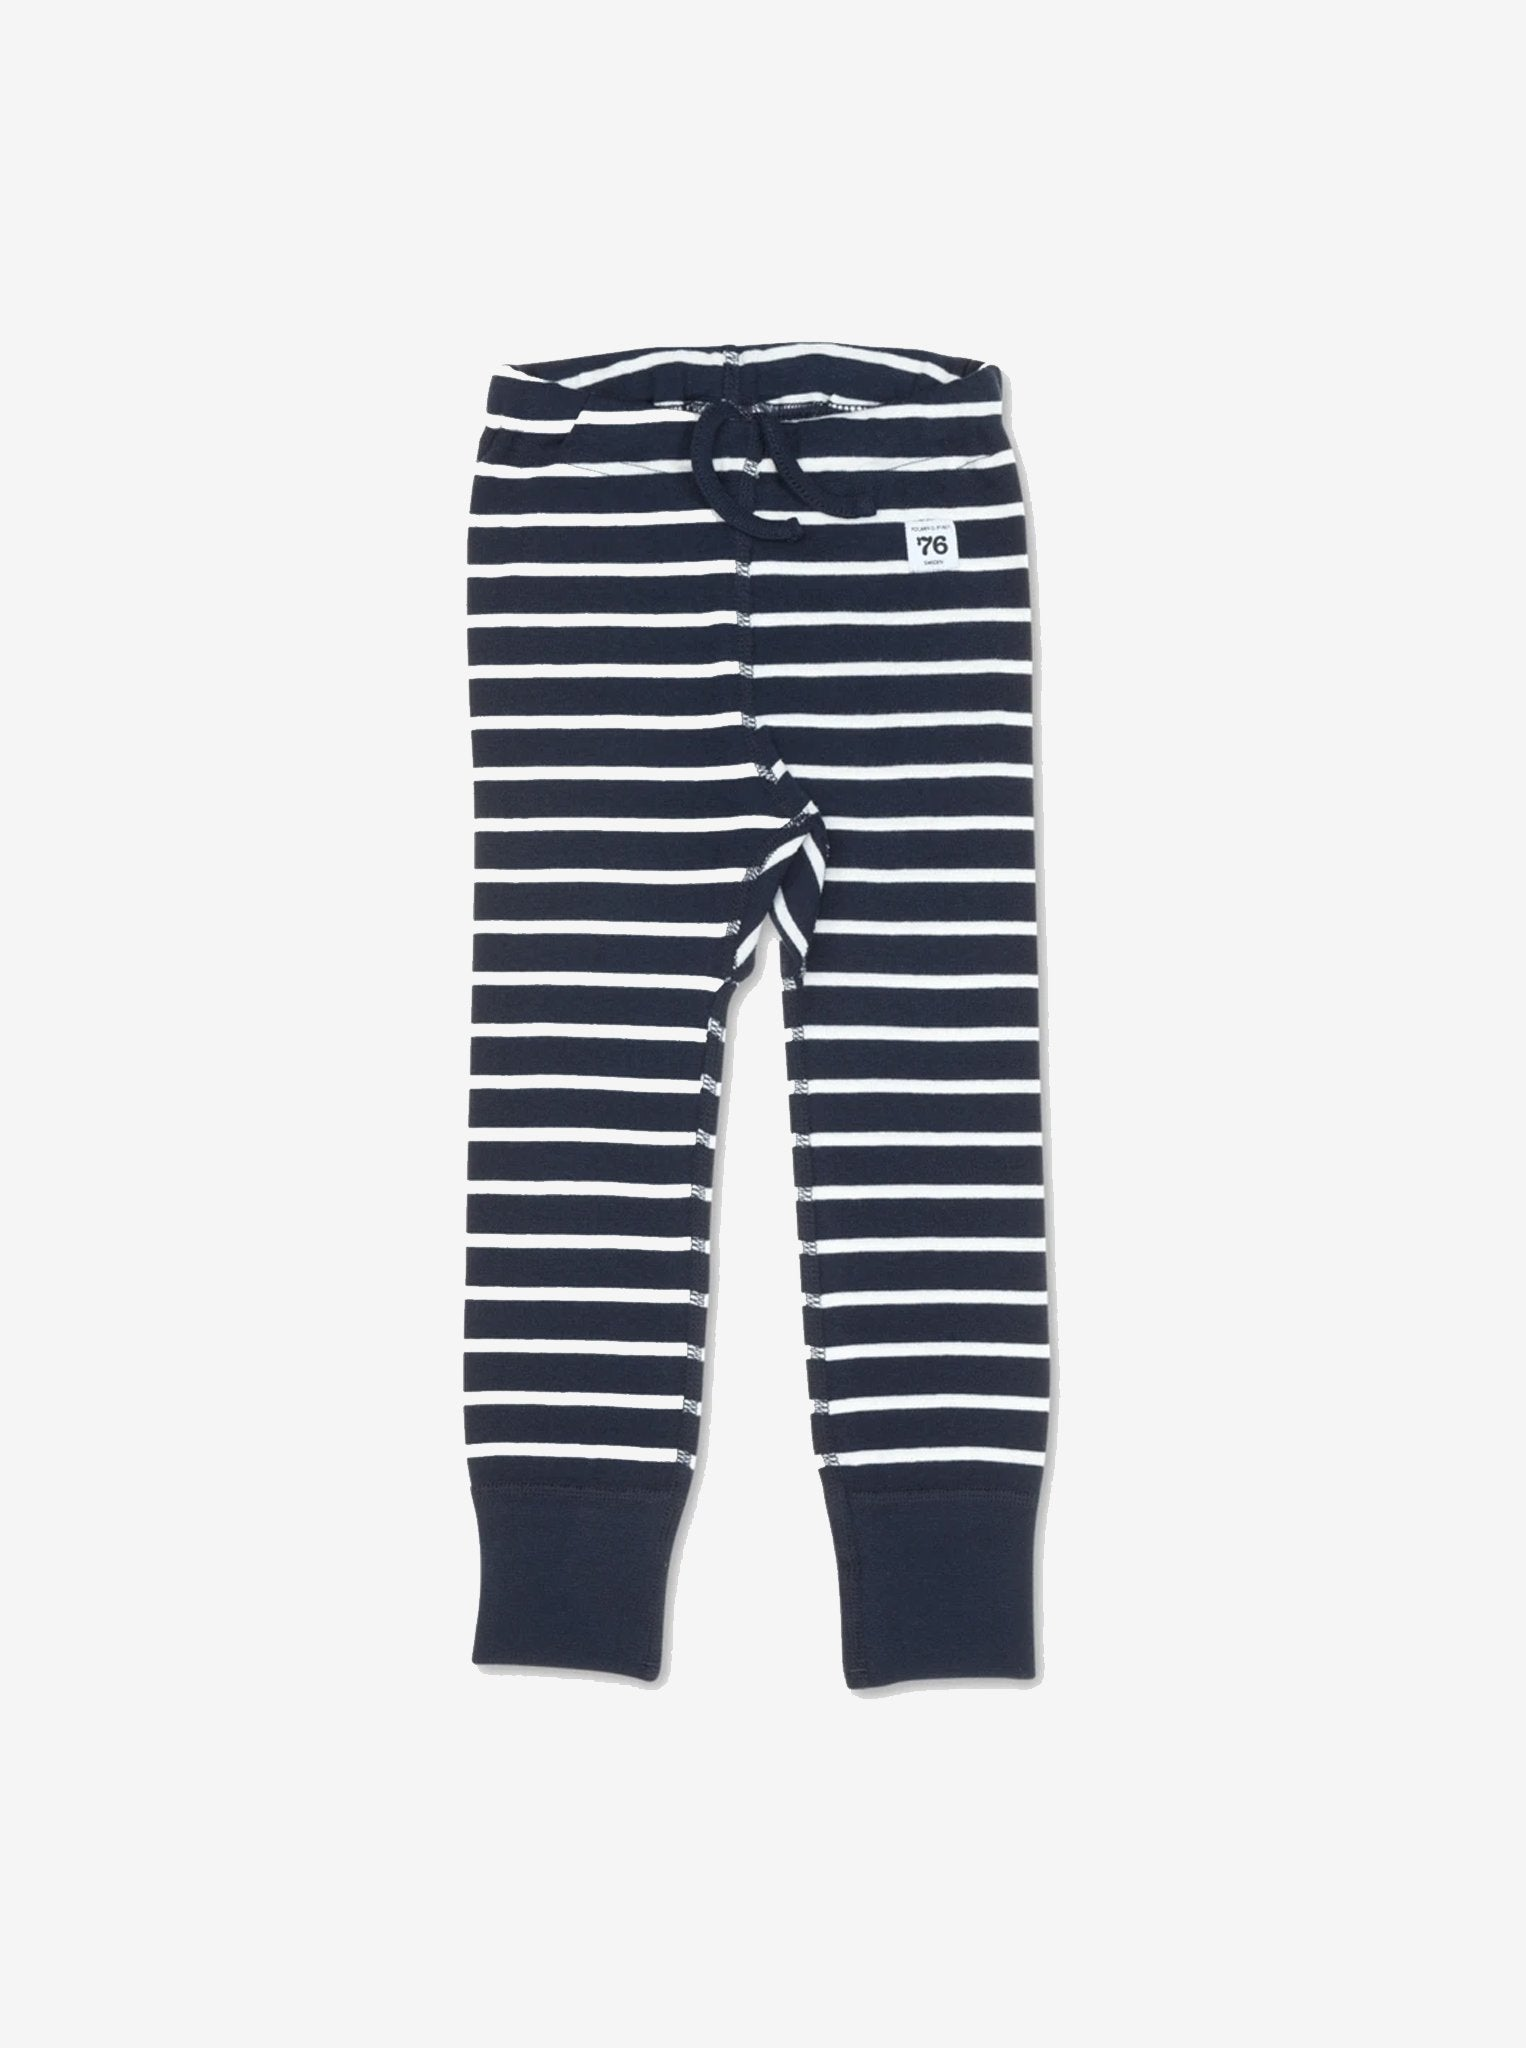 PO.P Stripe Kids Leggings